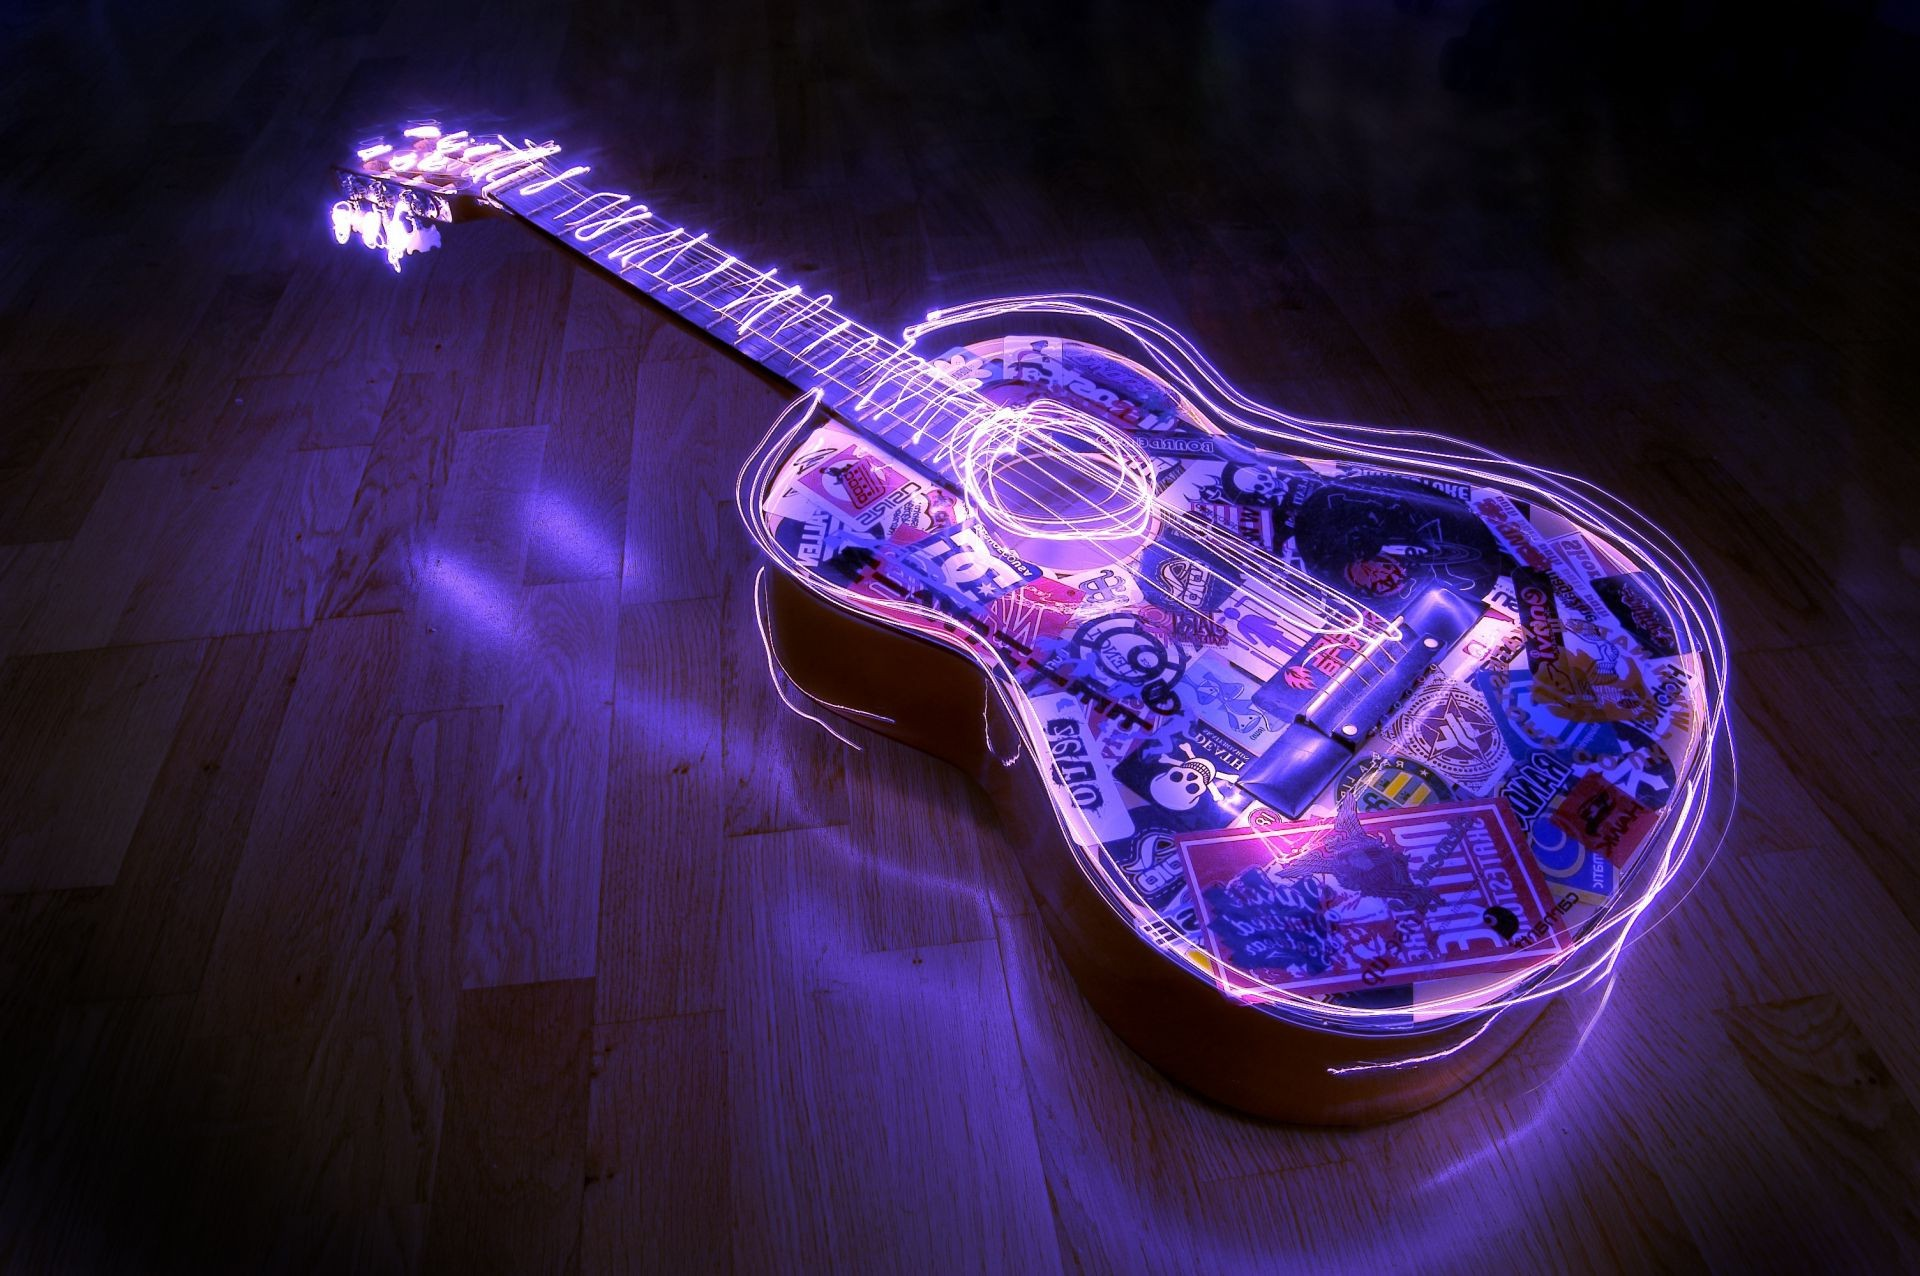 guitar acoustics waves by a line of lights parquet